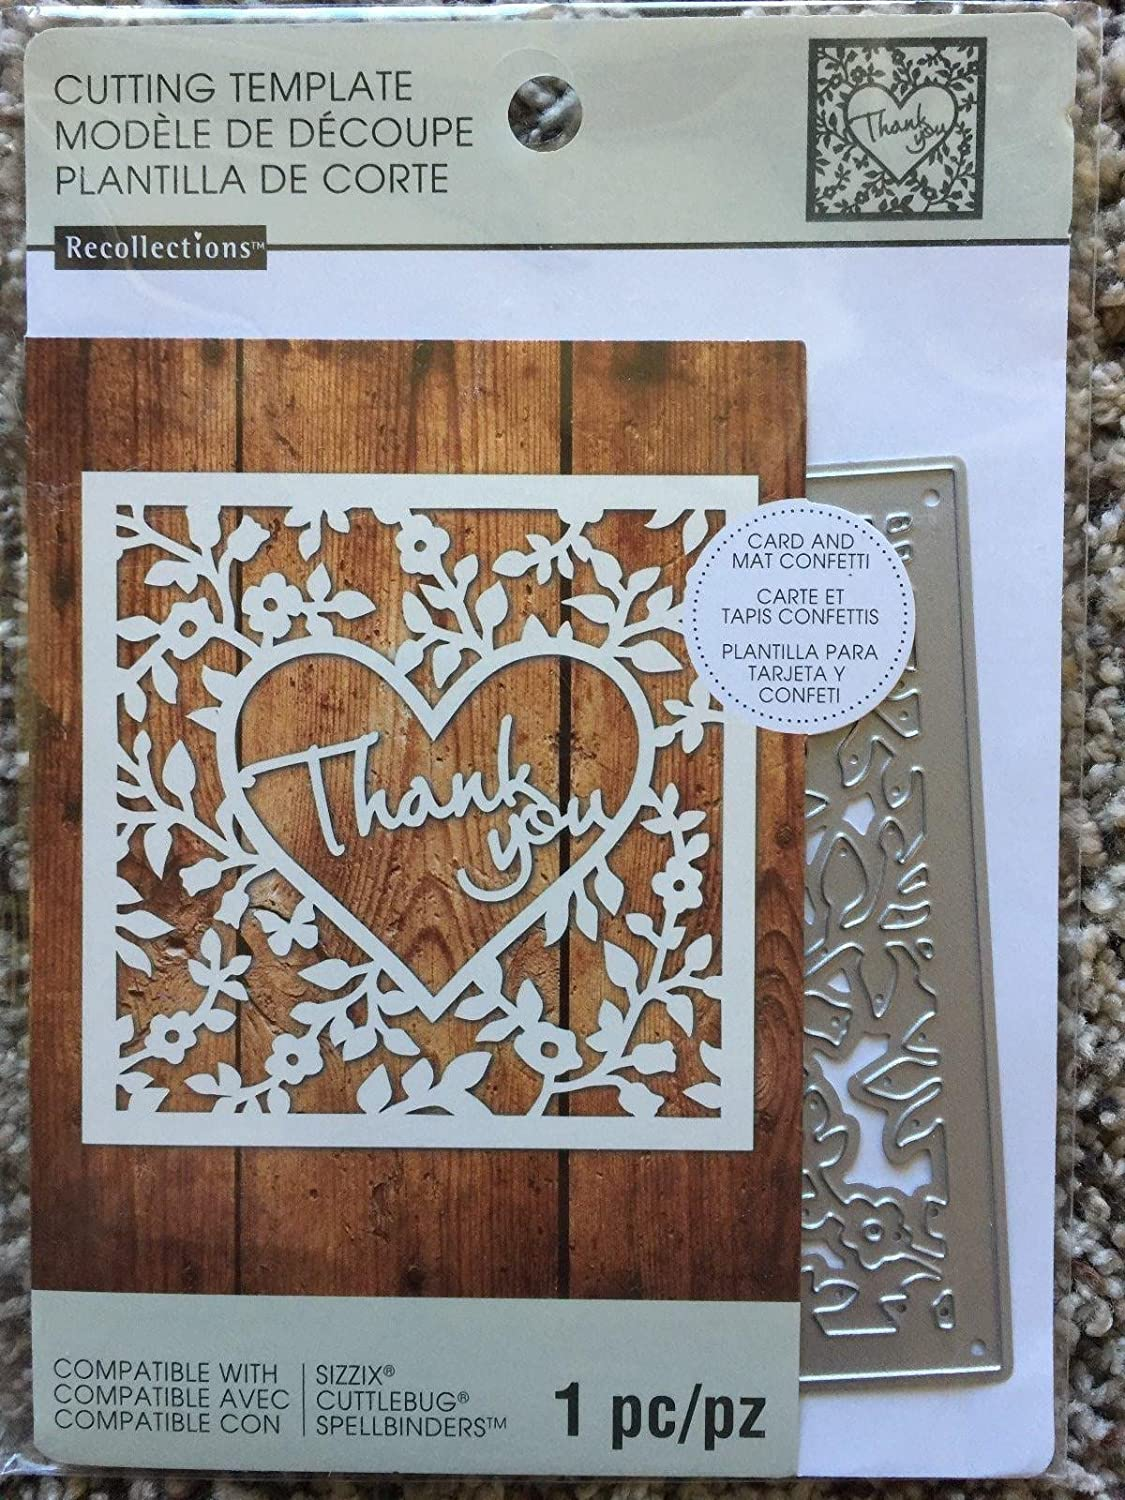 Recollections Cutting Die Template 221 Thank You (21 Cutting With Recollections Cards And Envelopes Templates